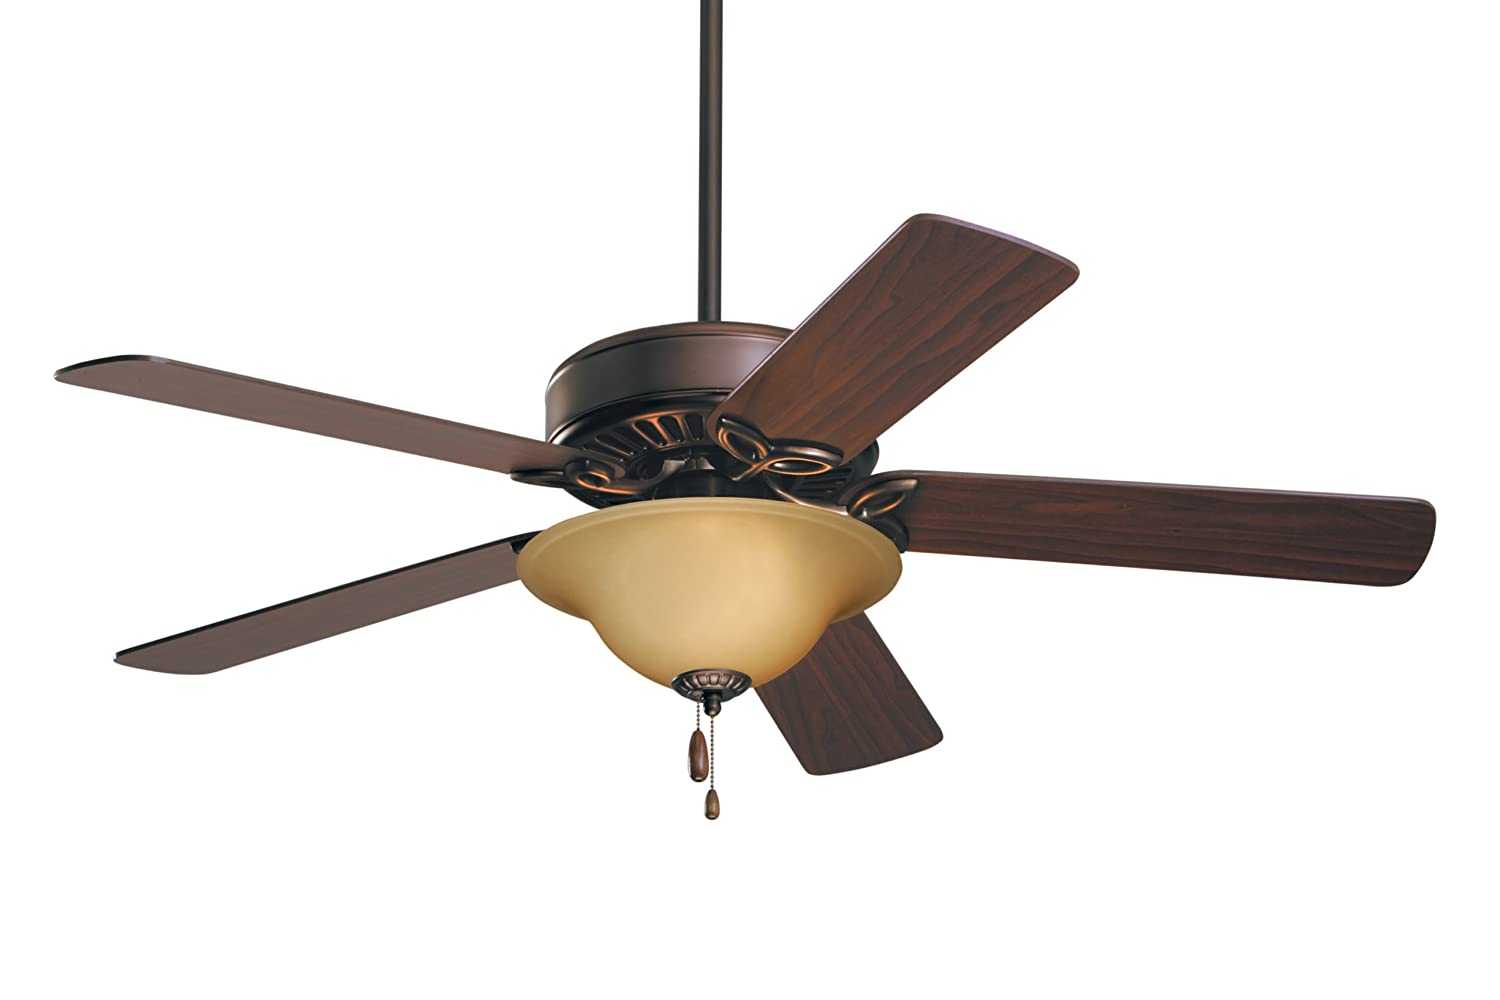 Amazon emerson ceiling fans cf712orb pro series ceiling fans amazon emerson ceiling fans cf712orb pro series ceiling fans indoor ceiling fan with light 50 inch emerson fans blades bronze ceiling fan with oil mozeypictures Choice Image